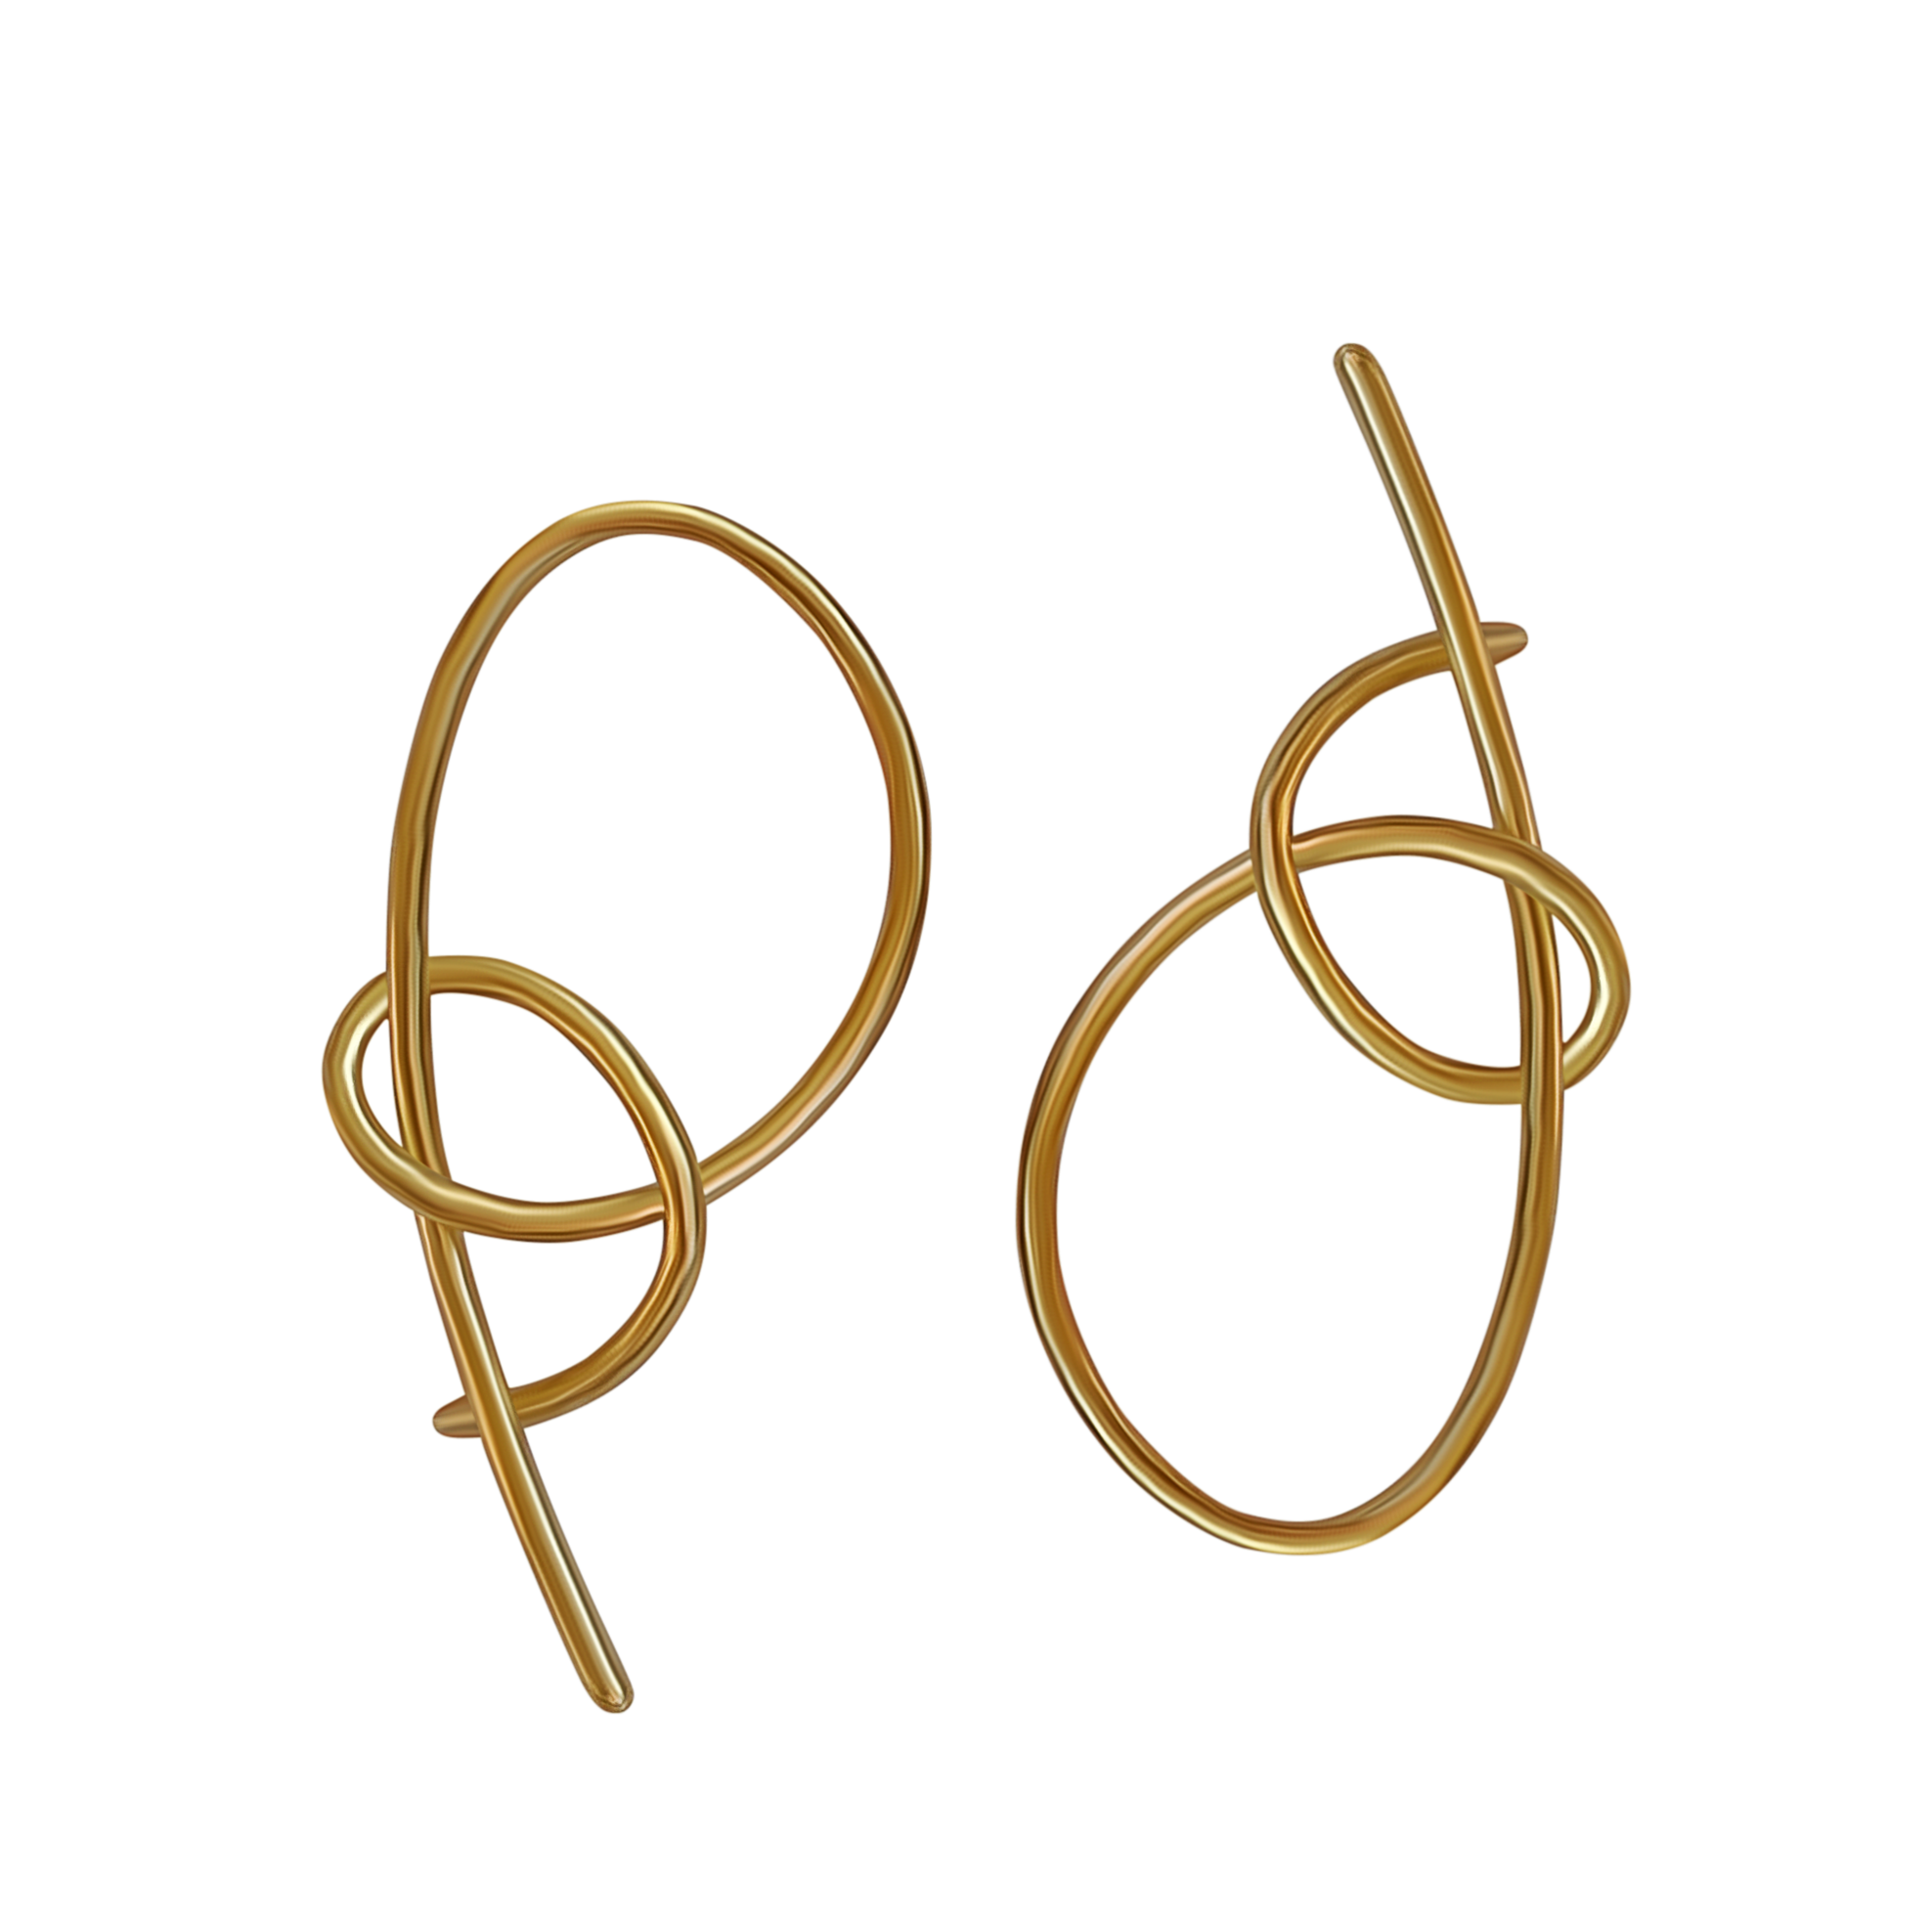 Large Loop Earrings